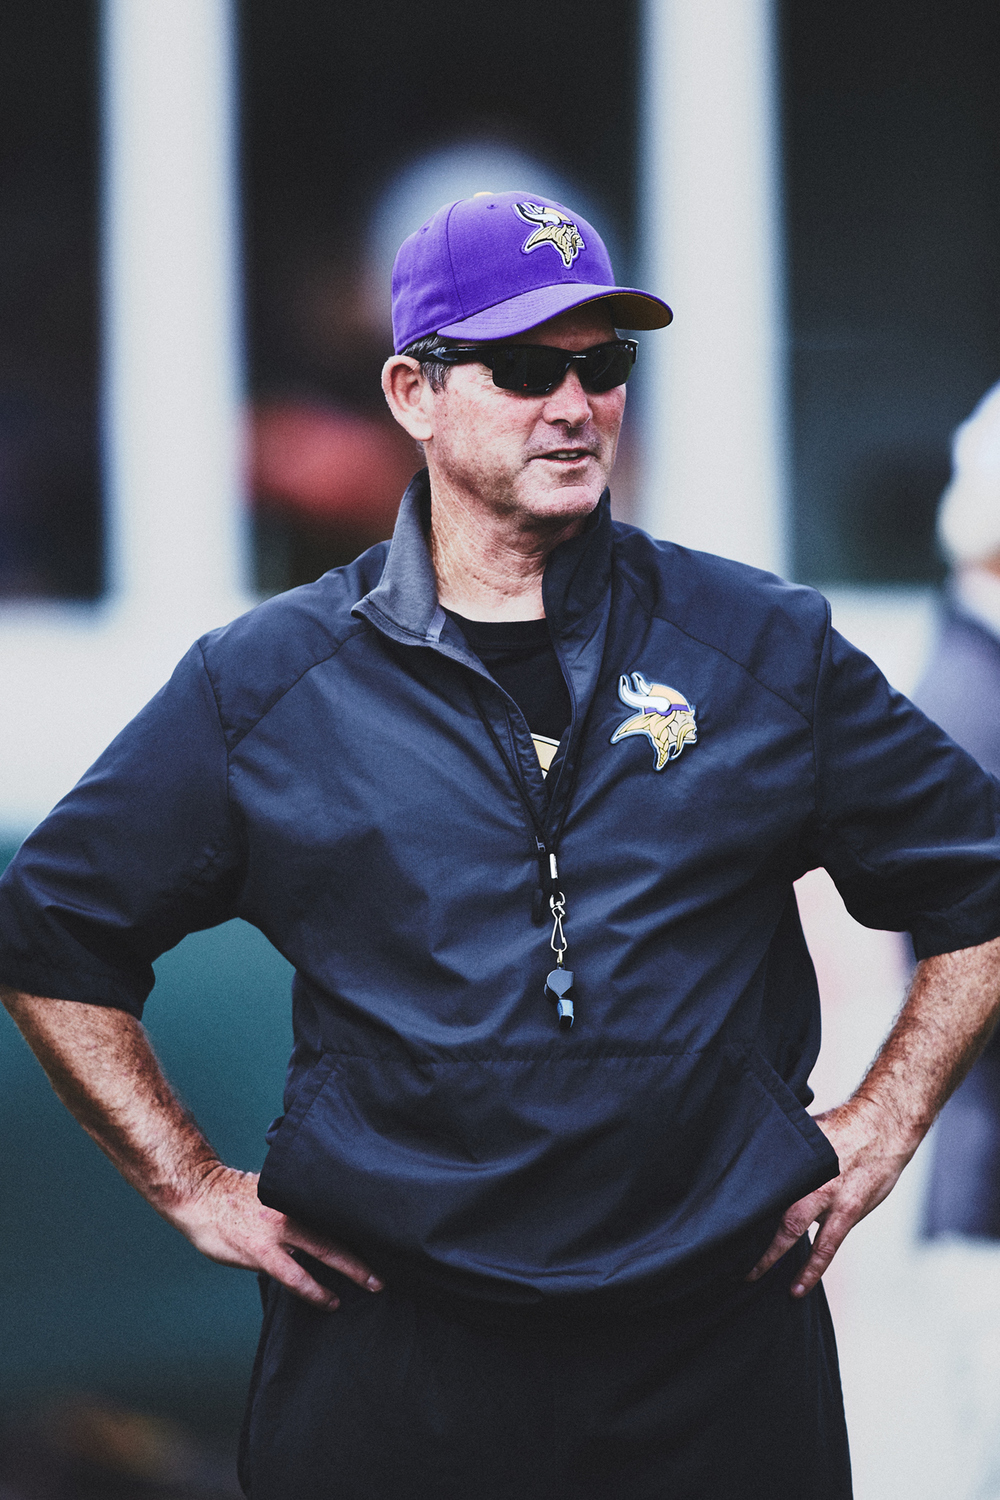 Vikings_2014_Season_For_Website_2048px_005.JPG